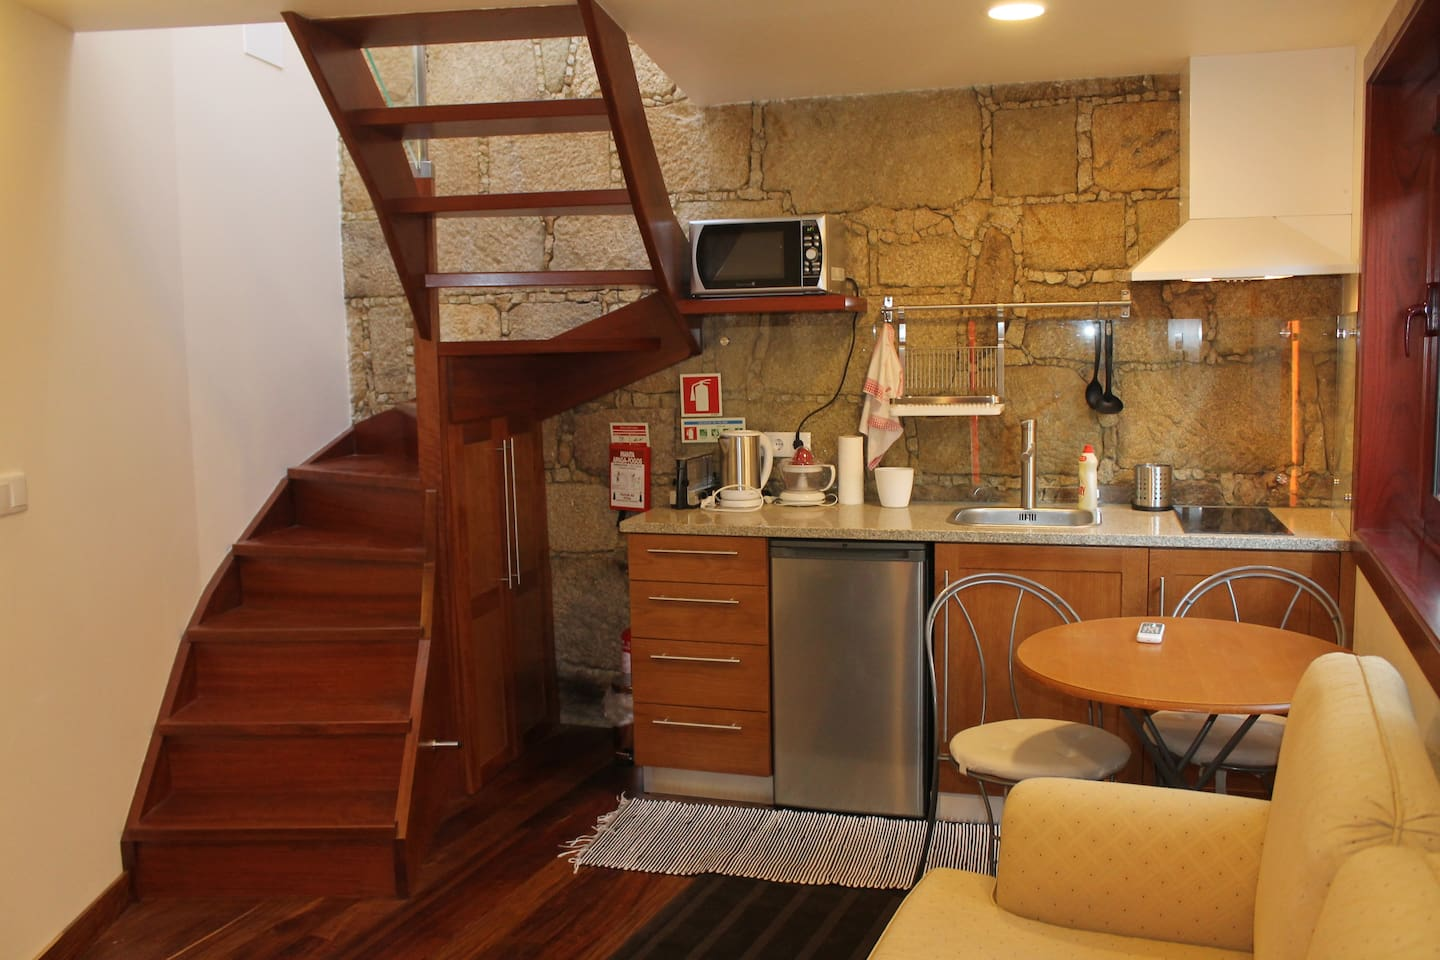 Kitchen and stairs to bedroom (upstairs)